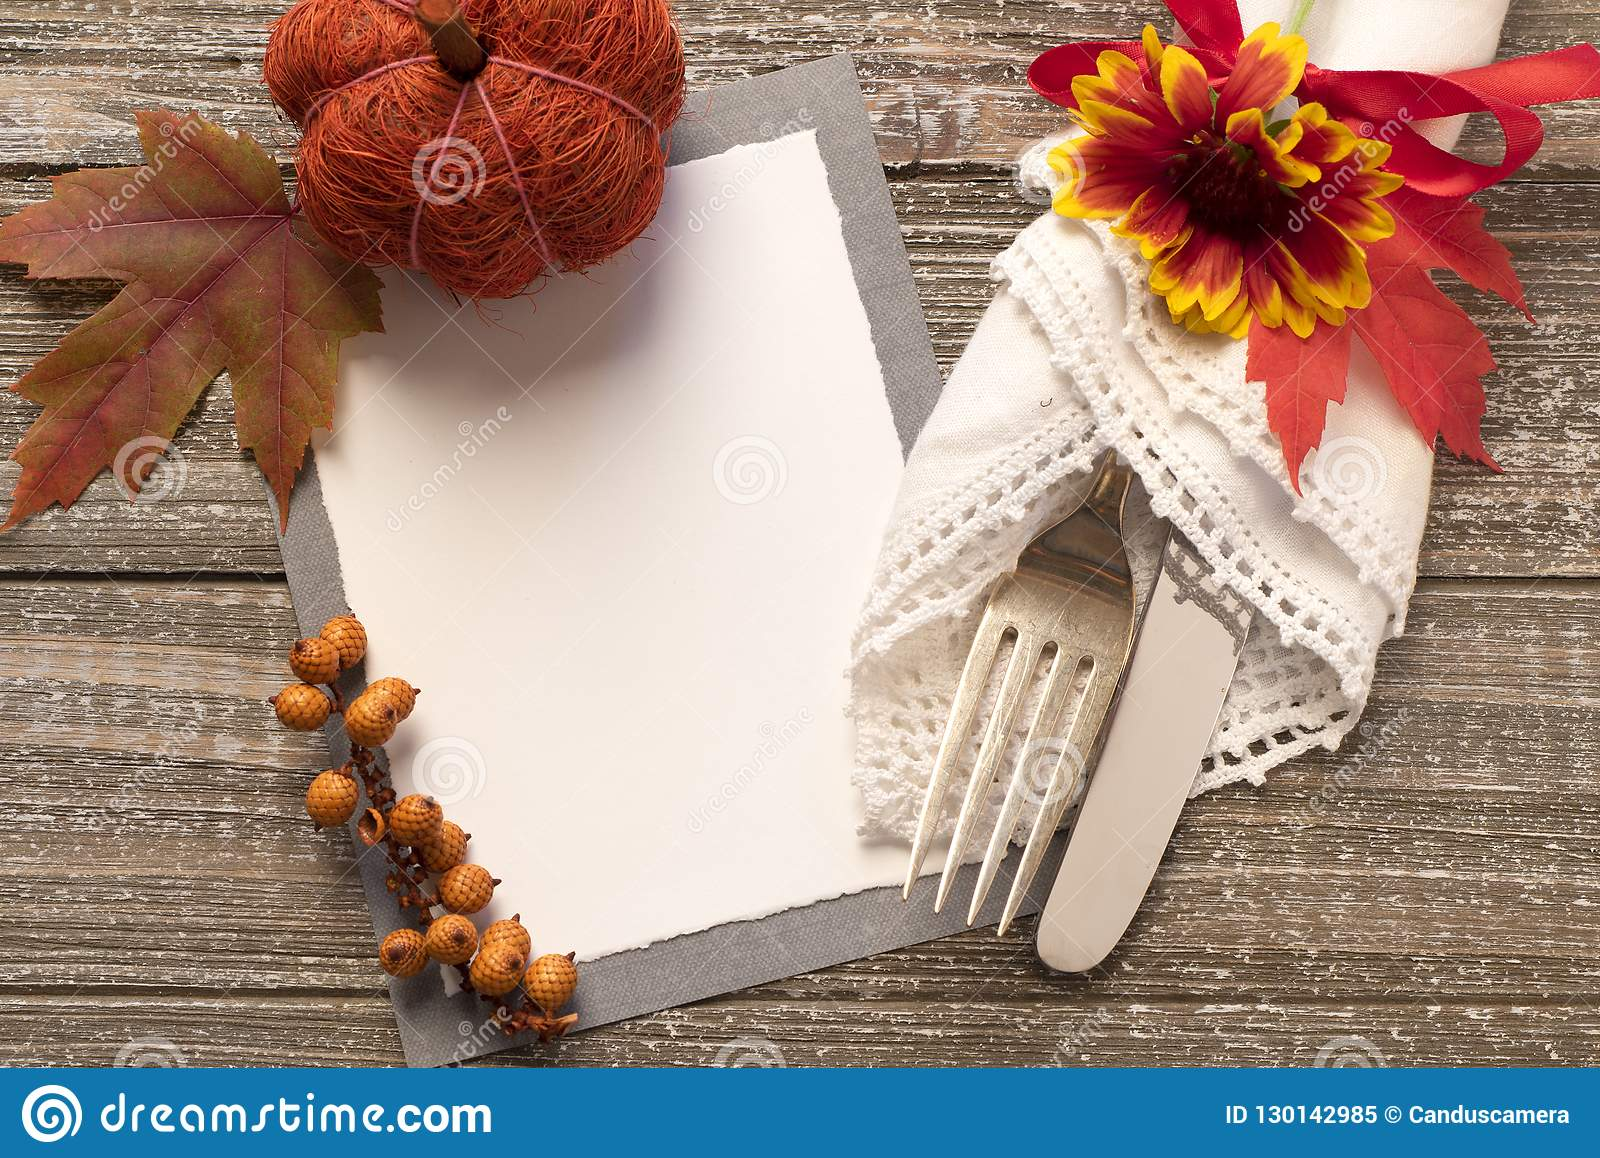 fall table setting with blank invite or menu card with space or room